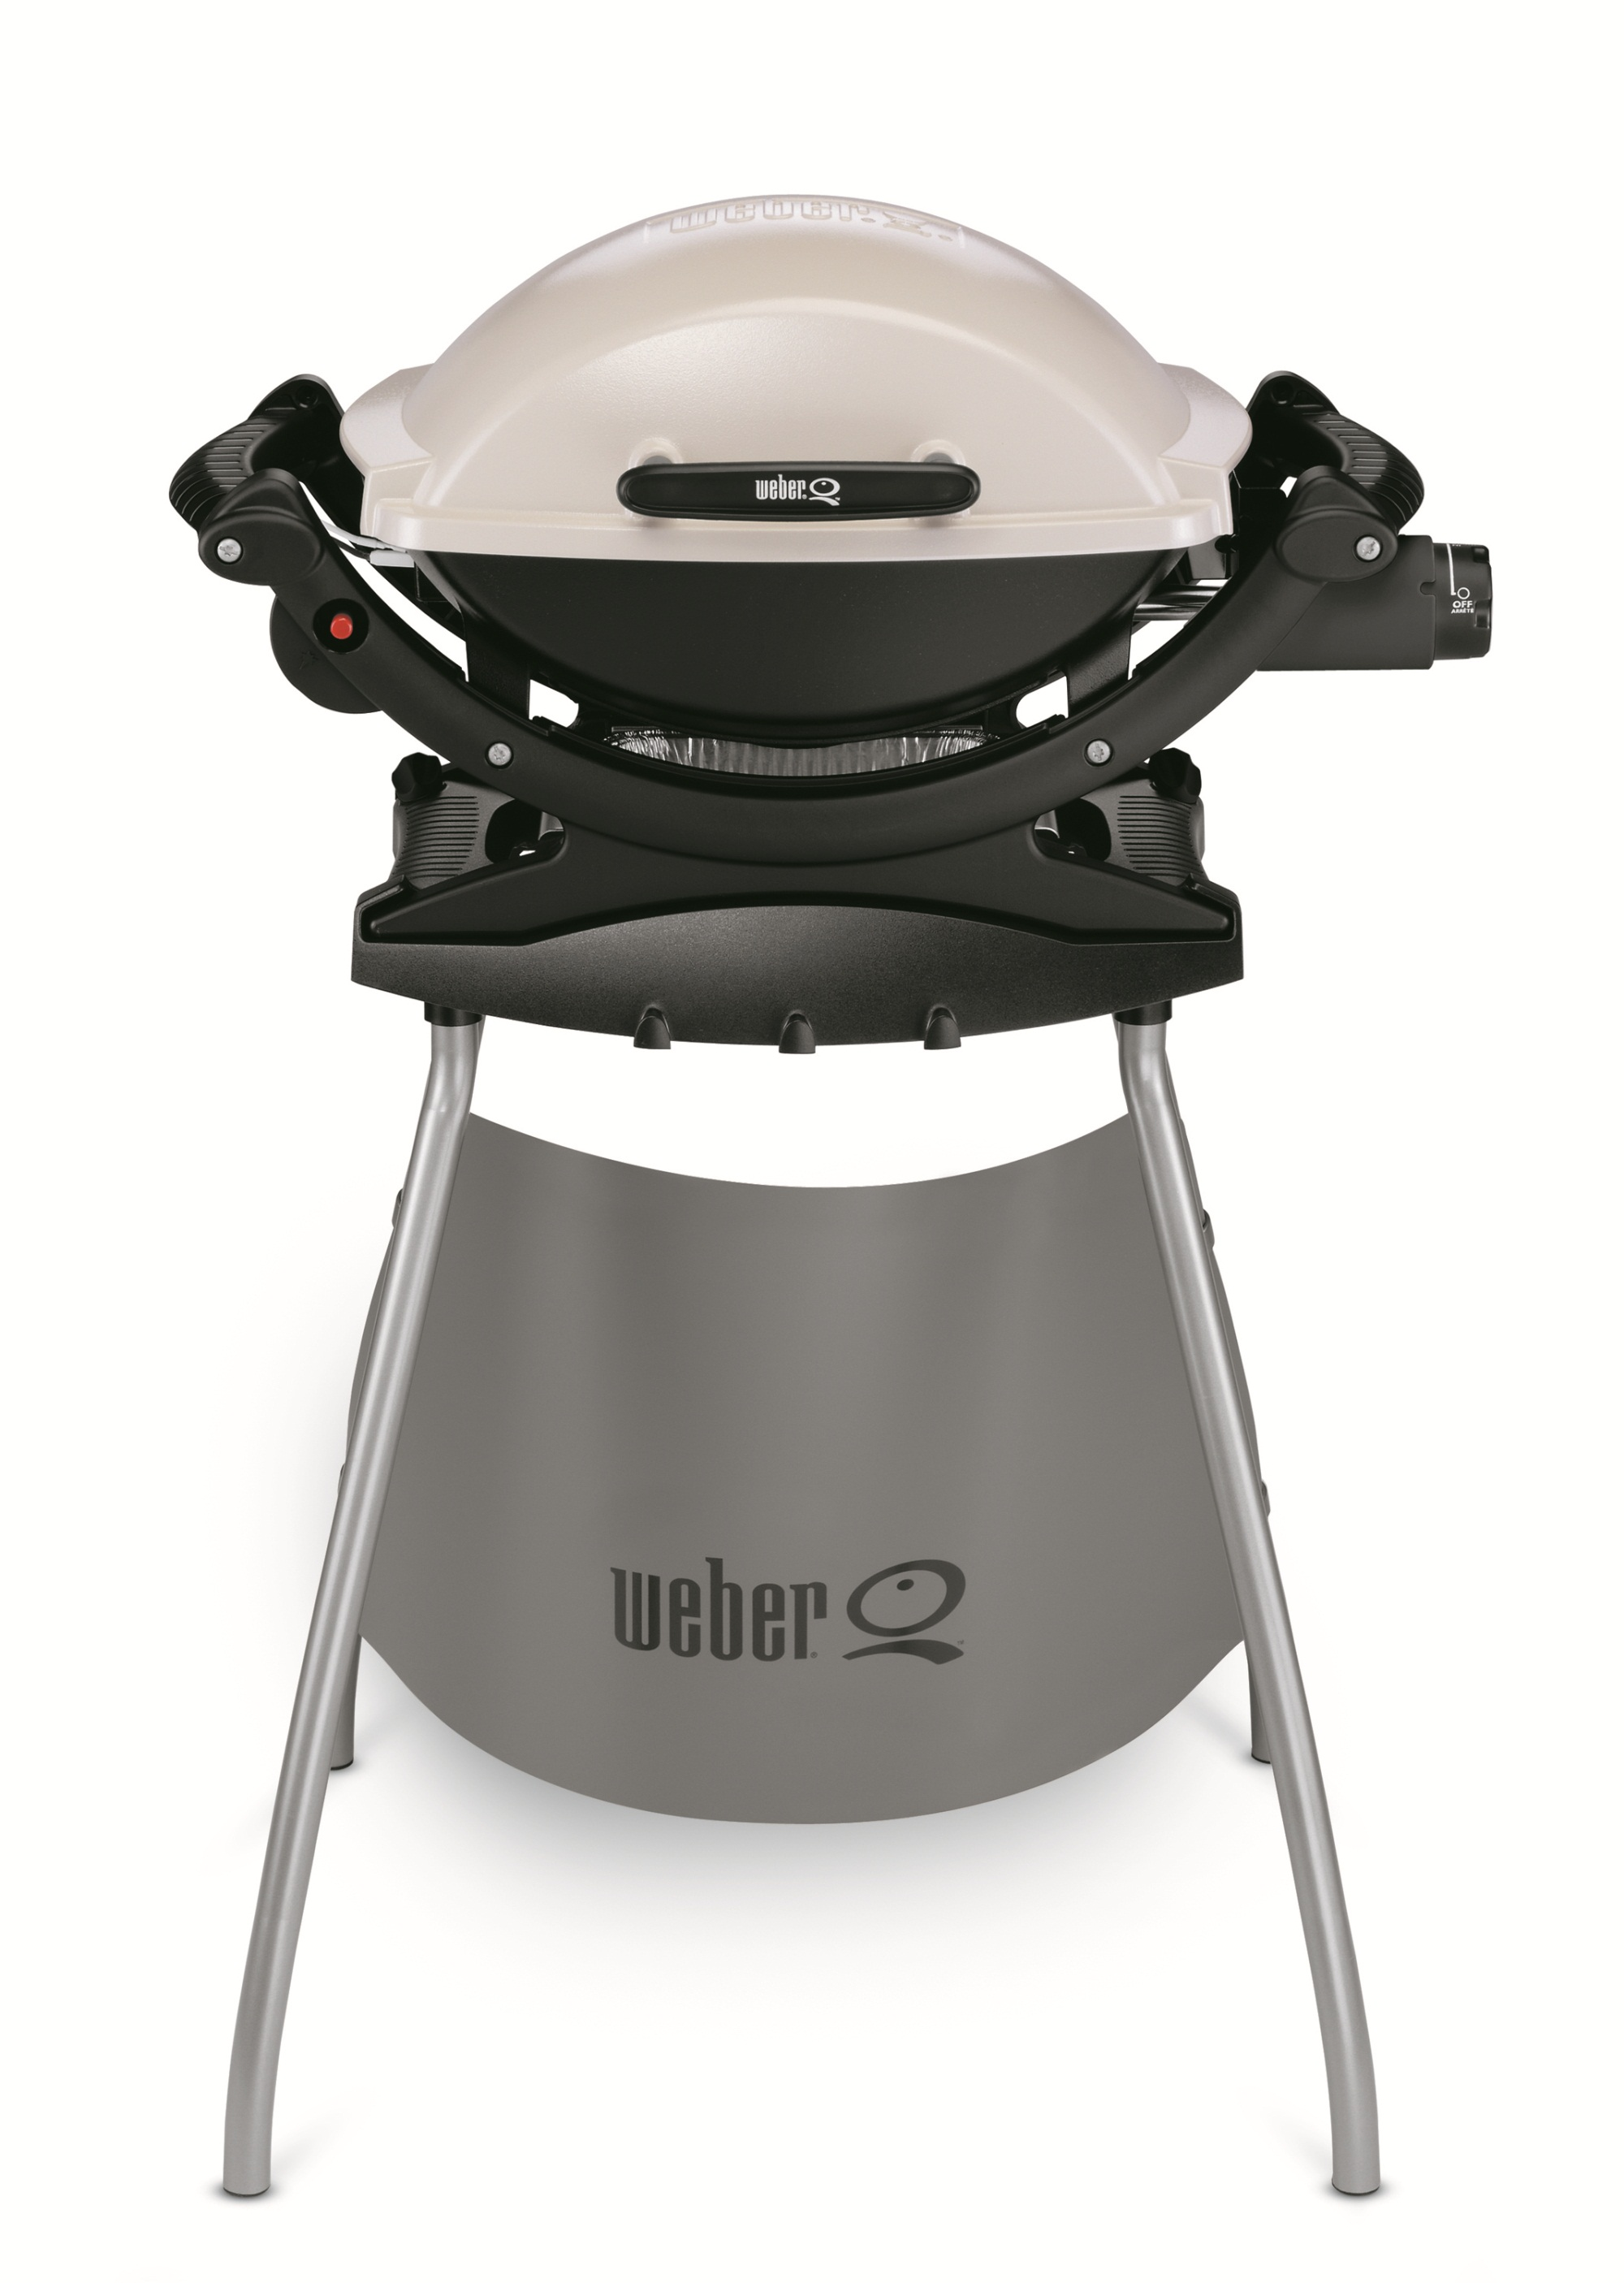 weber q 200 weber q200 grill reviews from real users weber vagn q 100 serien och q 200 serien. Black Bedroom Furniture Sets. Home Design Ideas